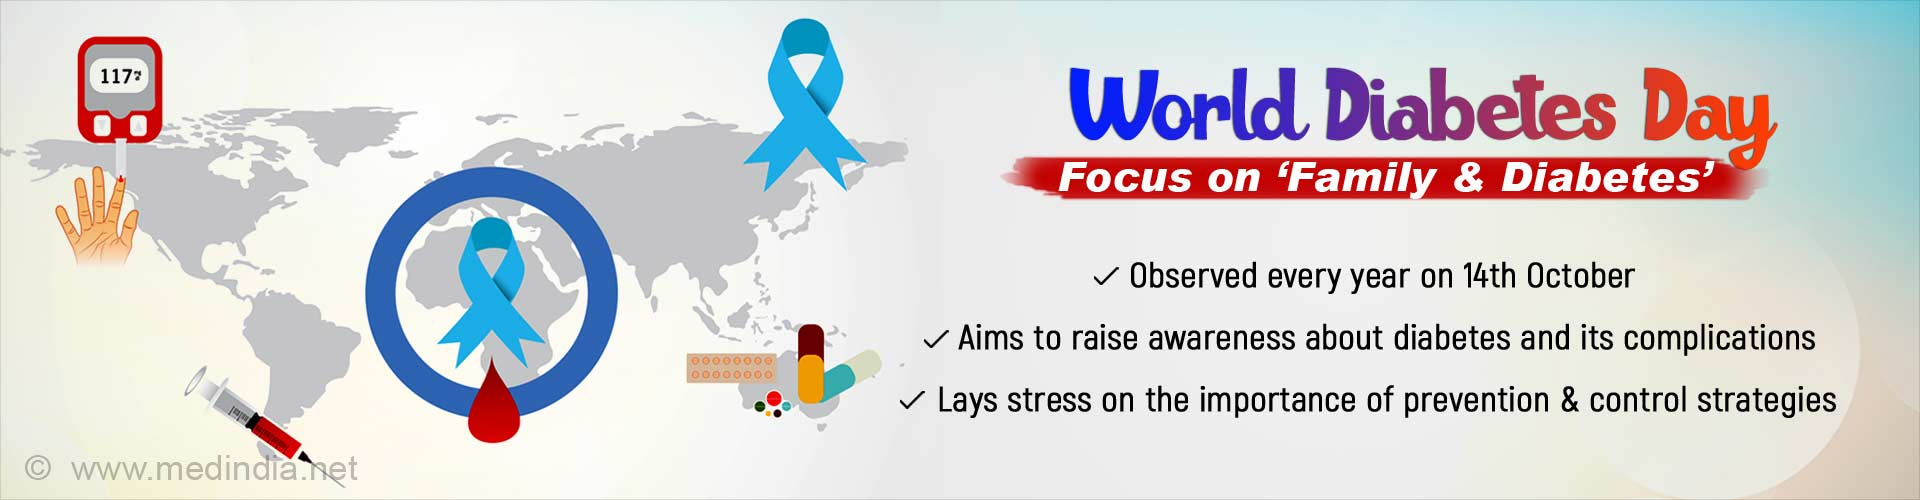 World Diabetes Day: Protect Your Family Against Diabetes!